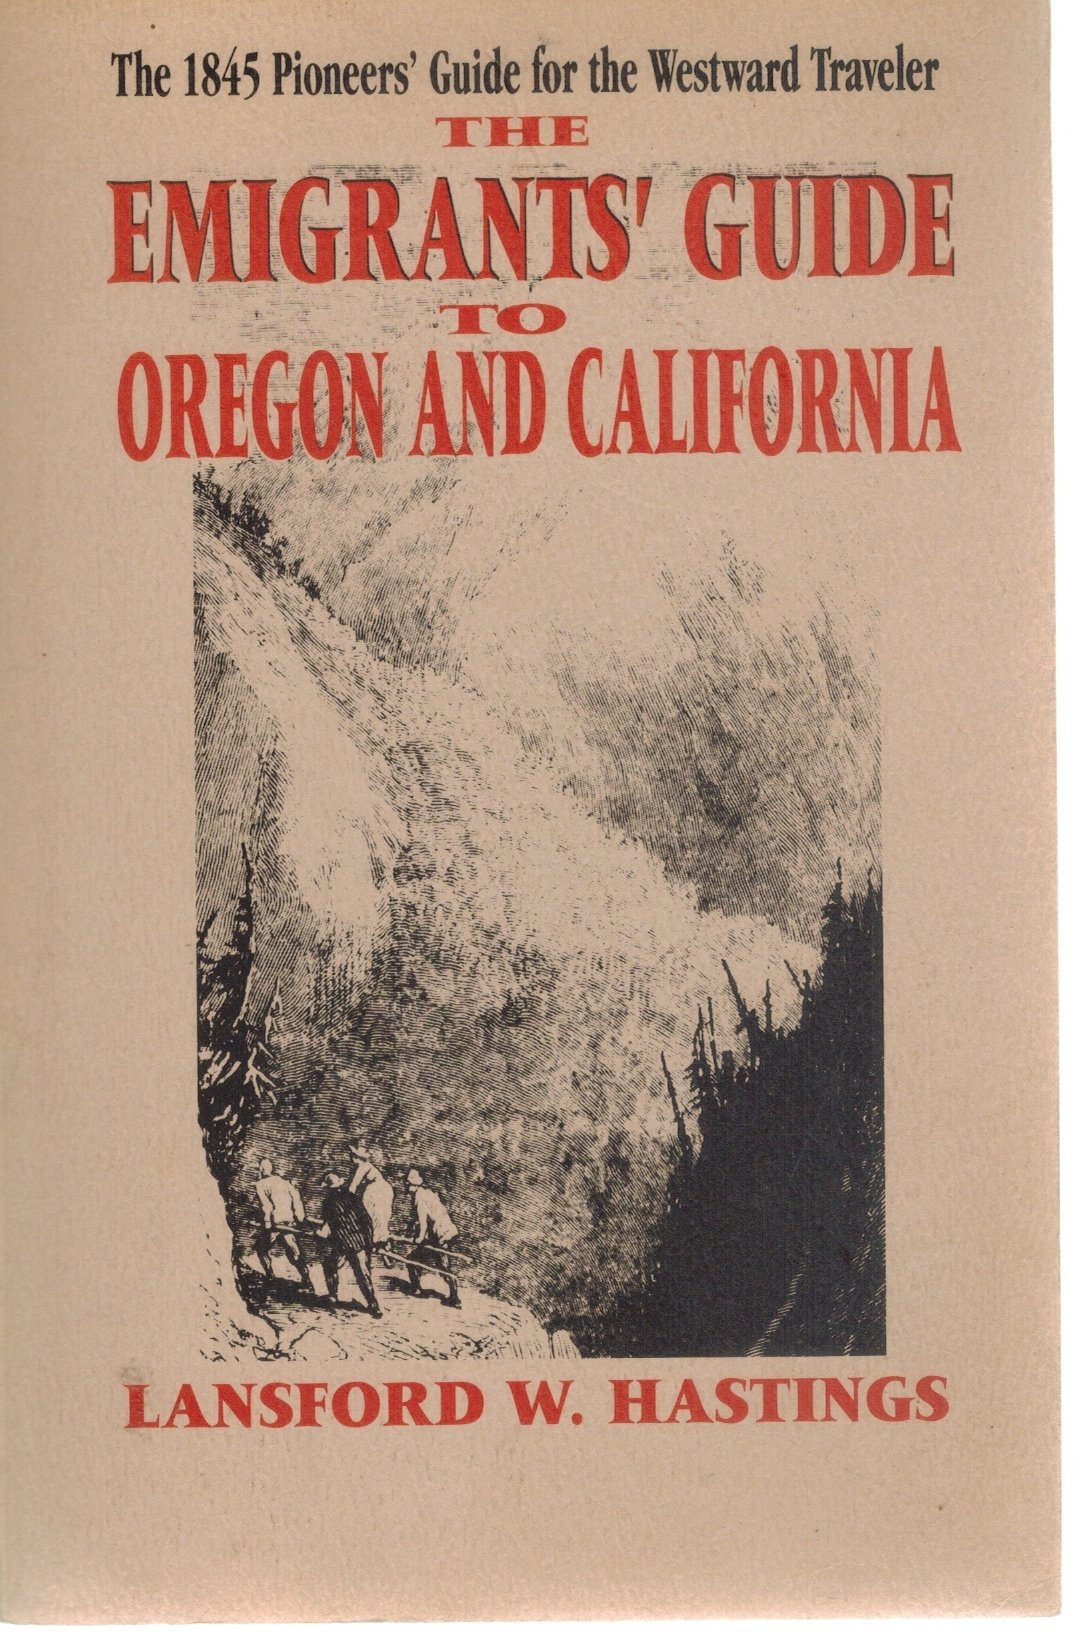 EMIGRANTS GUIDE TO OREGON & CALIFORNIA  by Hastings, Lansford